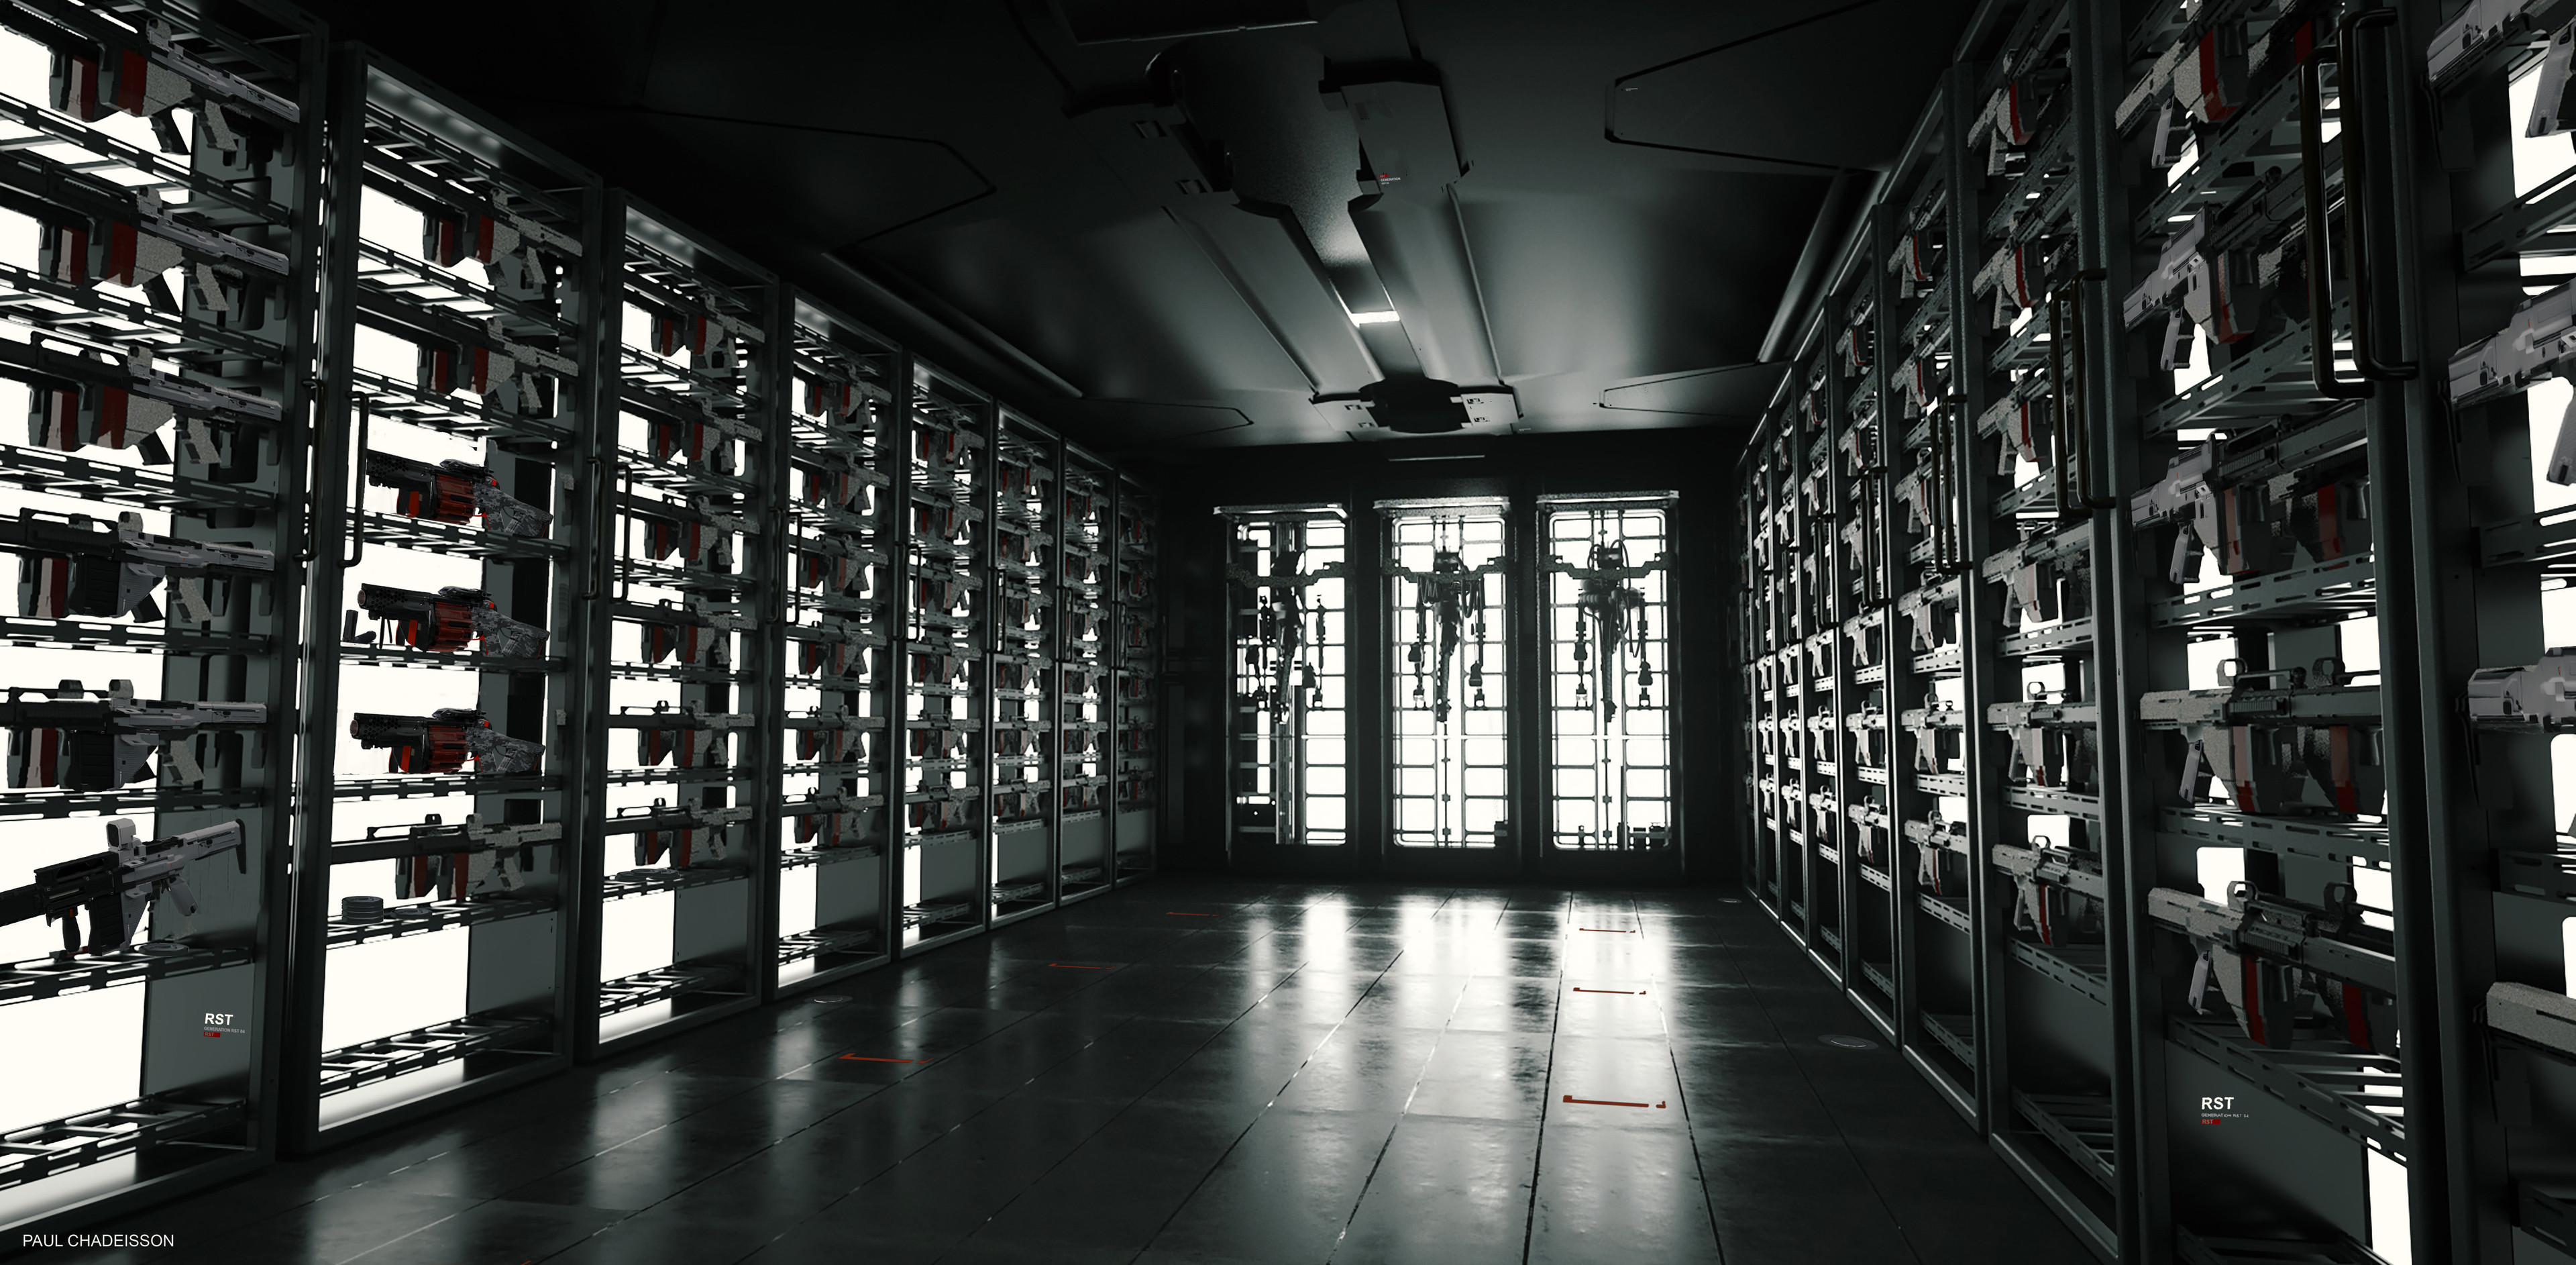 RST armory room